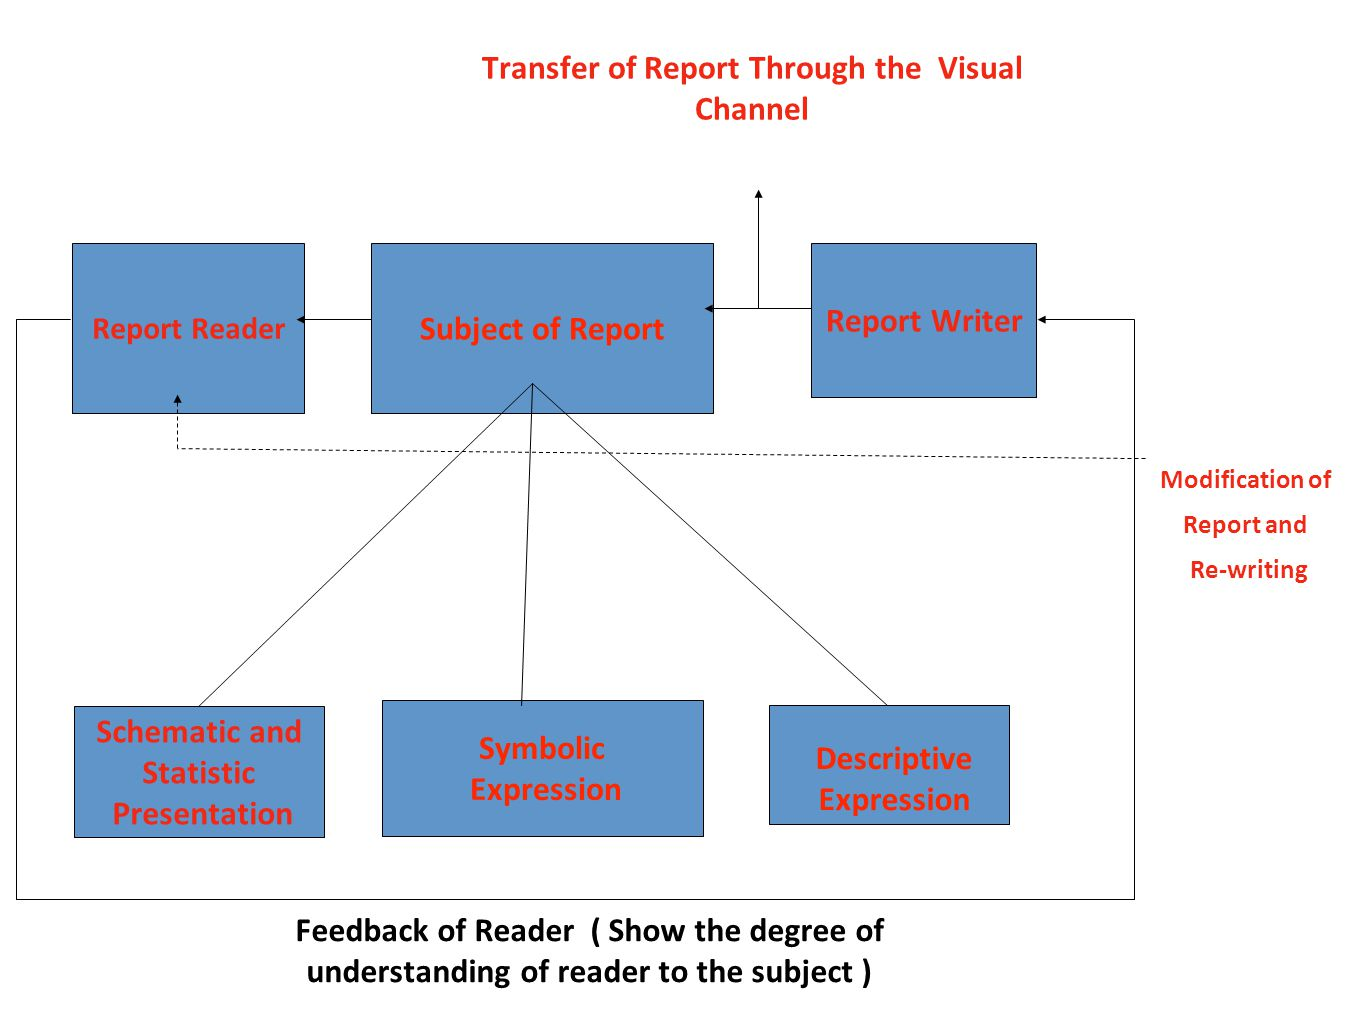 Transfer of Report Through the Visual Channel